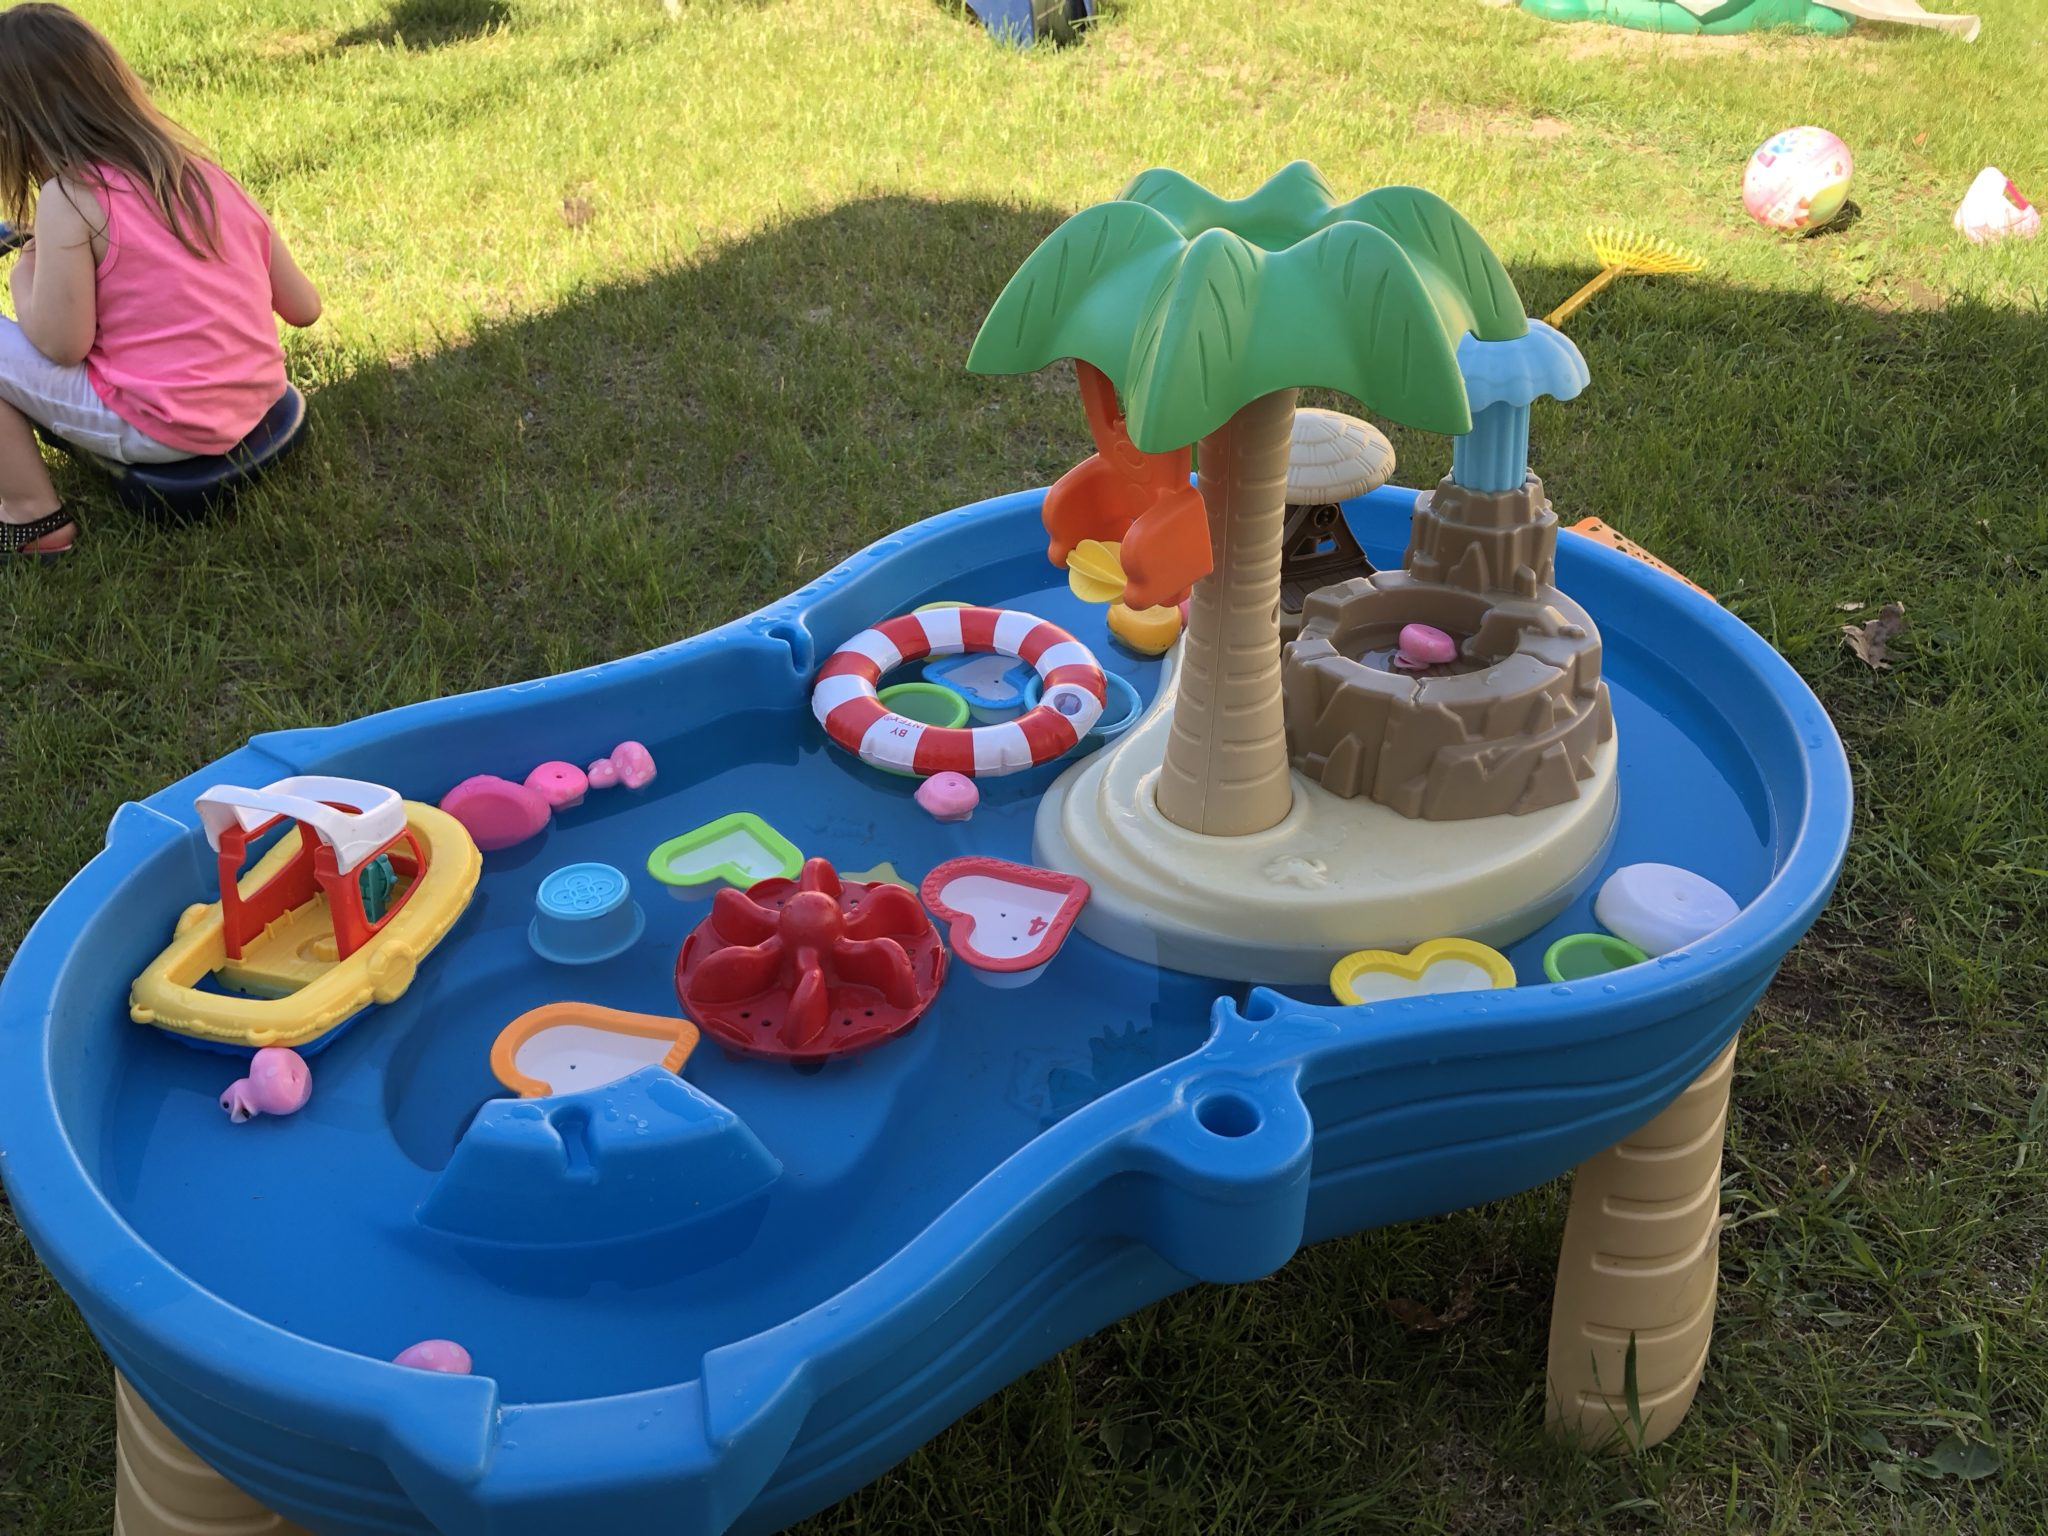 Water table filled with toys